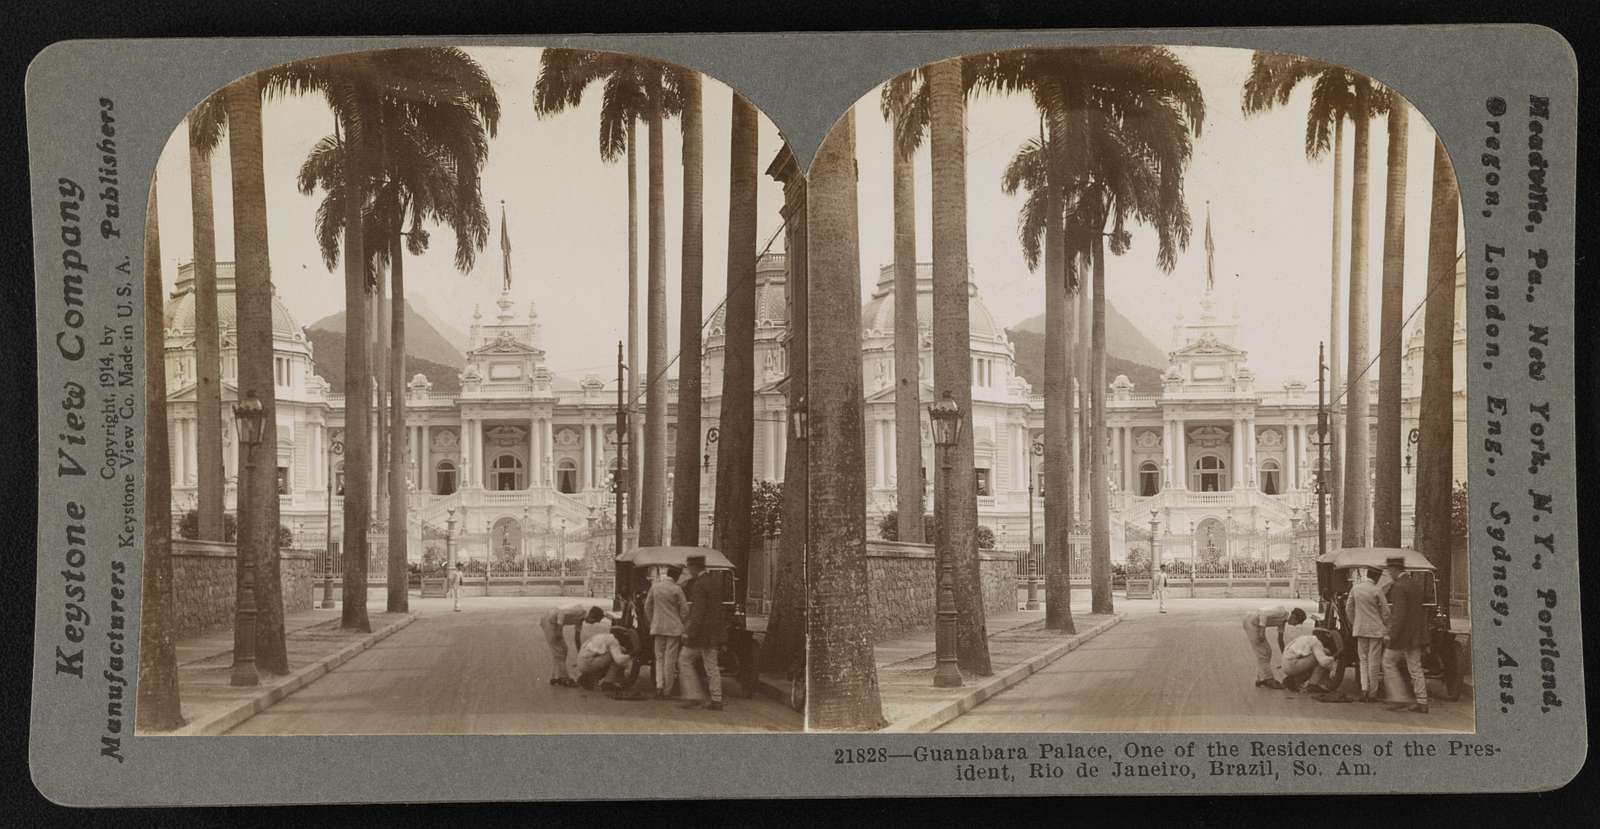 Guanabara Palace, one of the residences of the President, Rio de Janeiro, Brazil, So. Am.